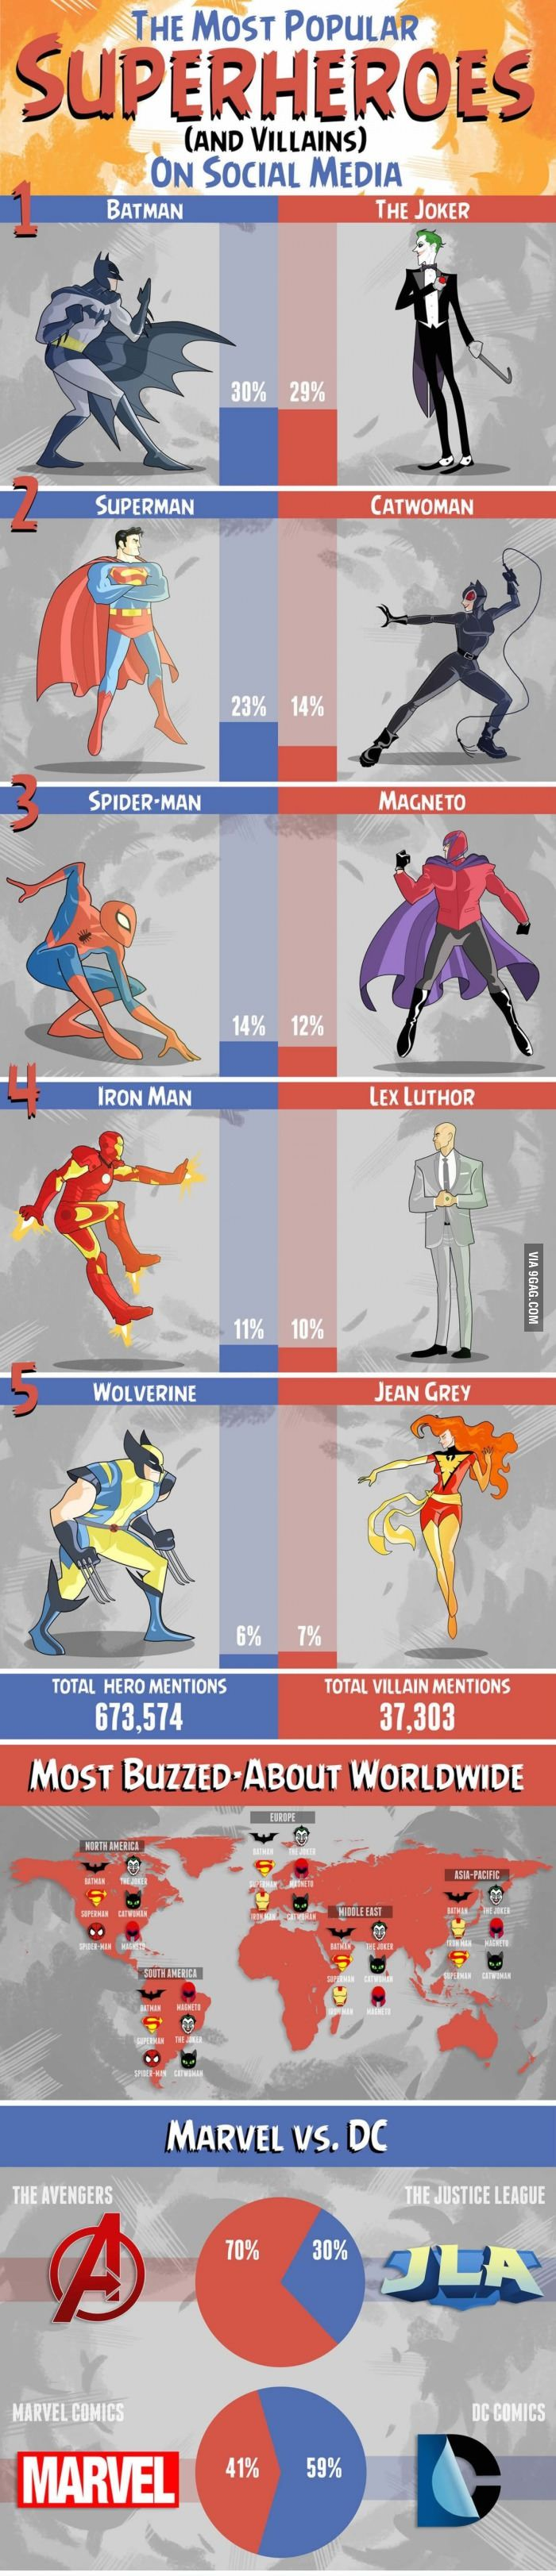 The Most Popular Superheroes (And Villains) On Social Medias.